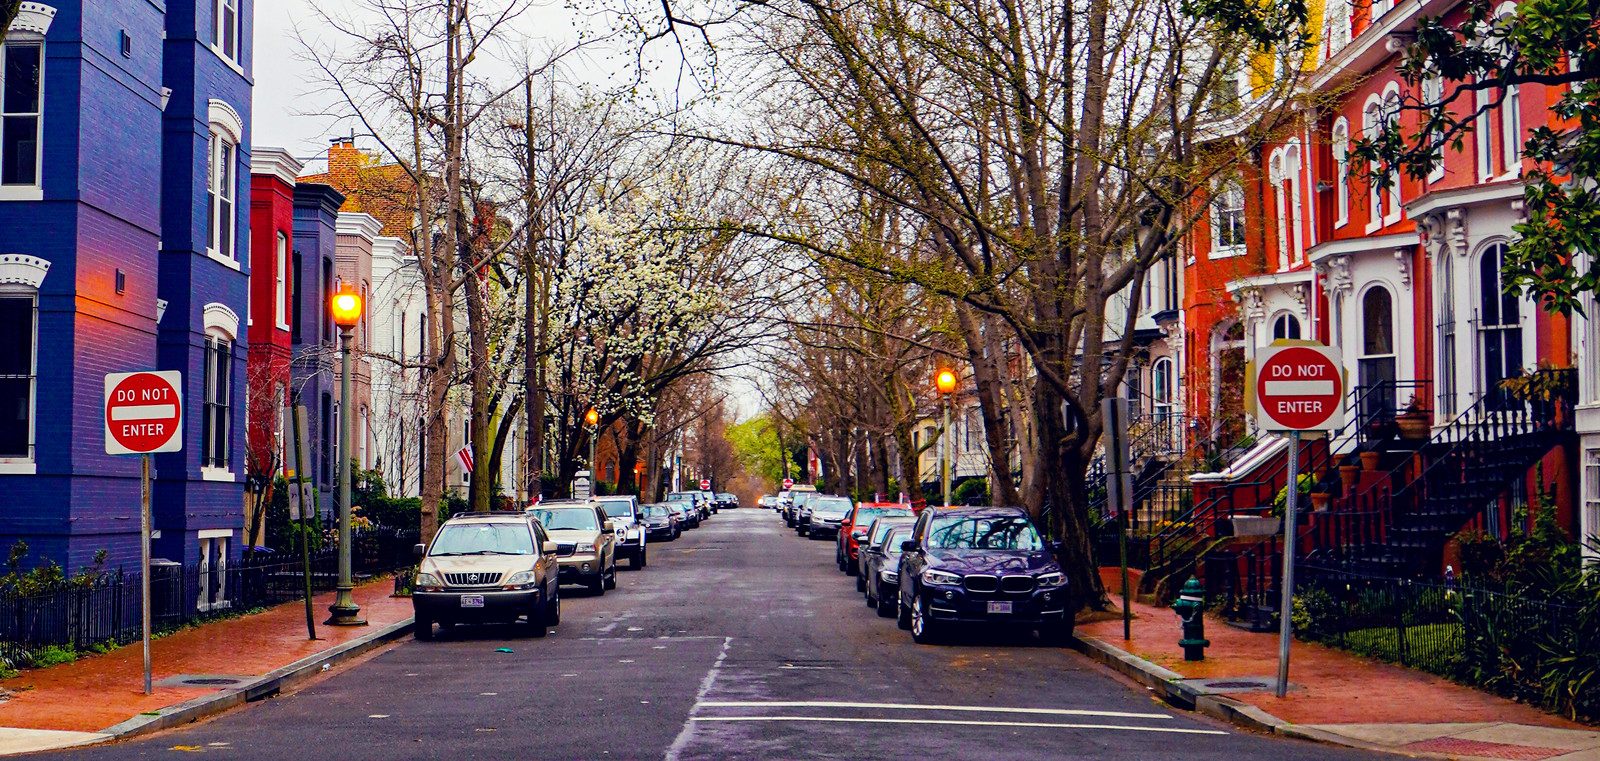 Thanks for Publishing my Photo, UrbanTurf, in How Well is DC Doing at Social Distancing?